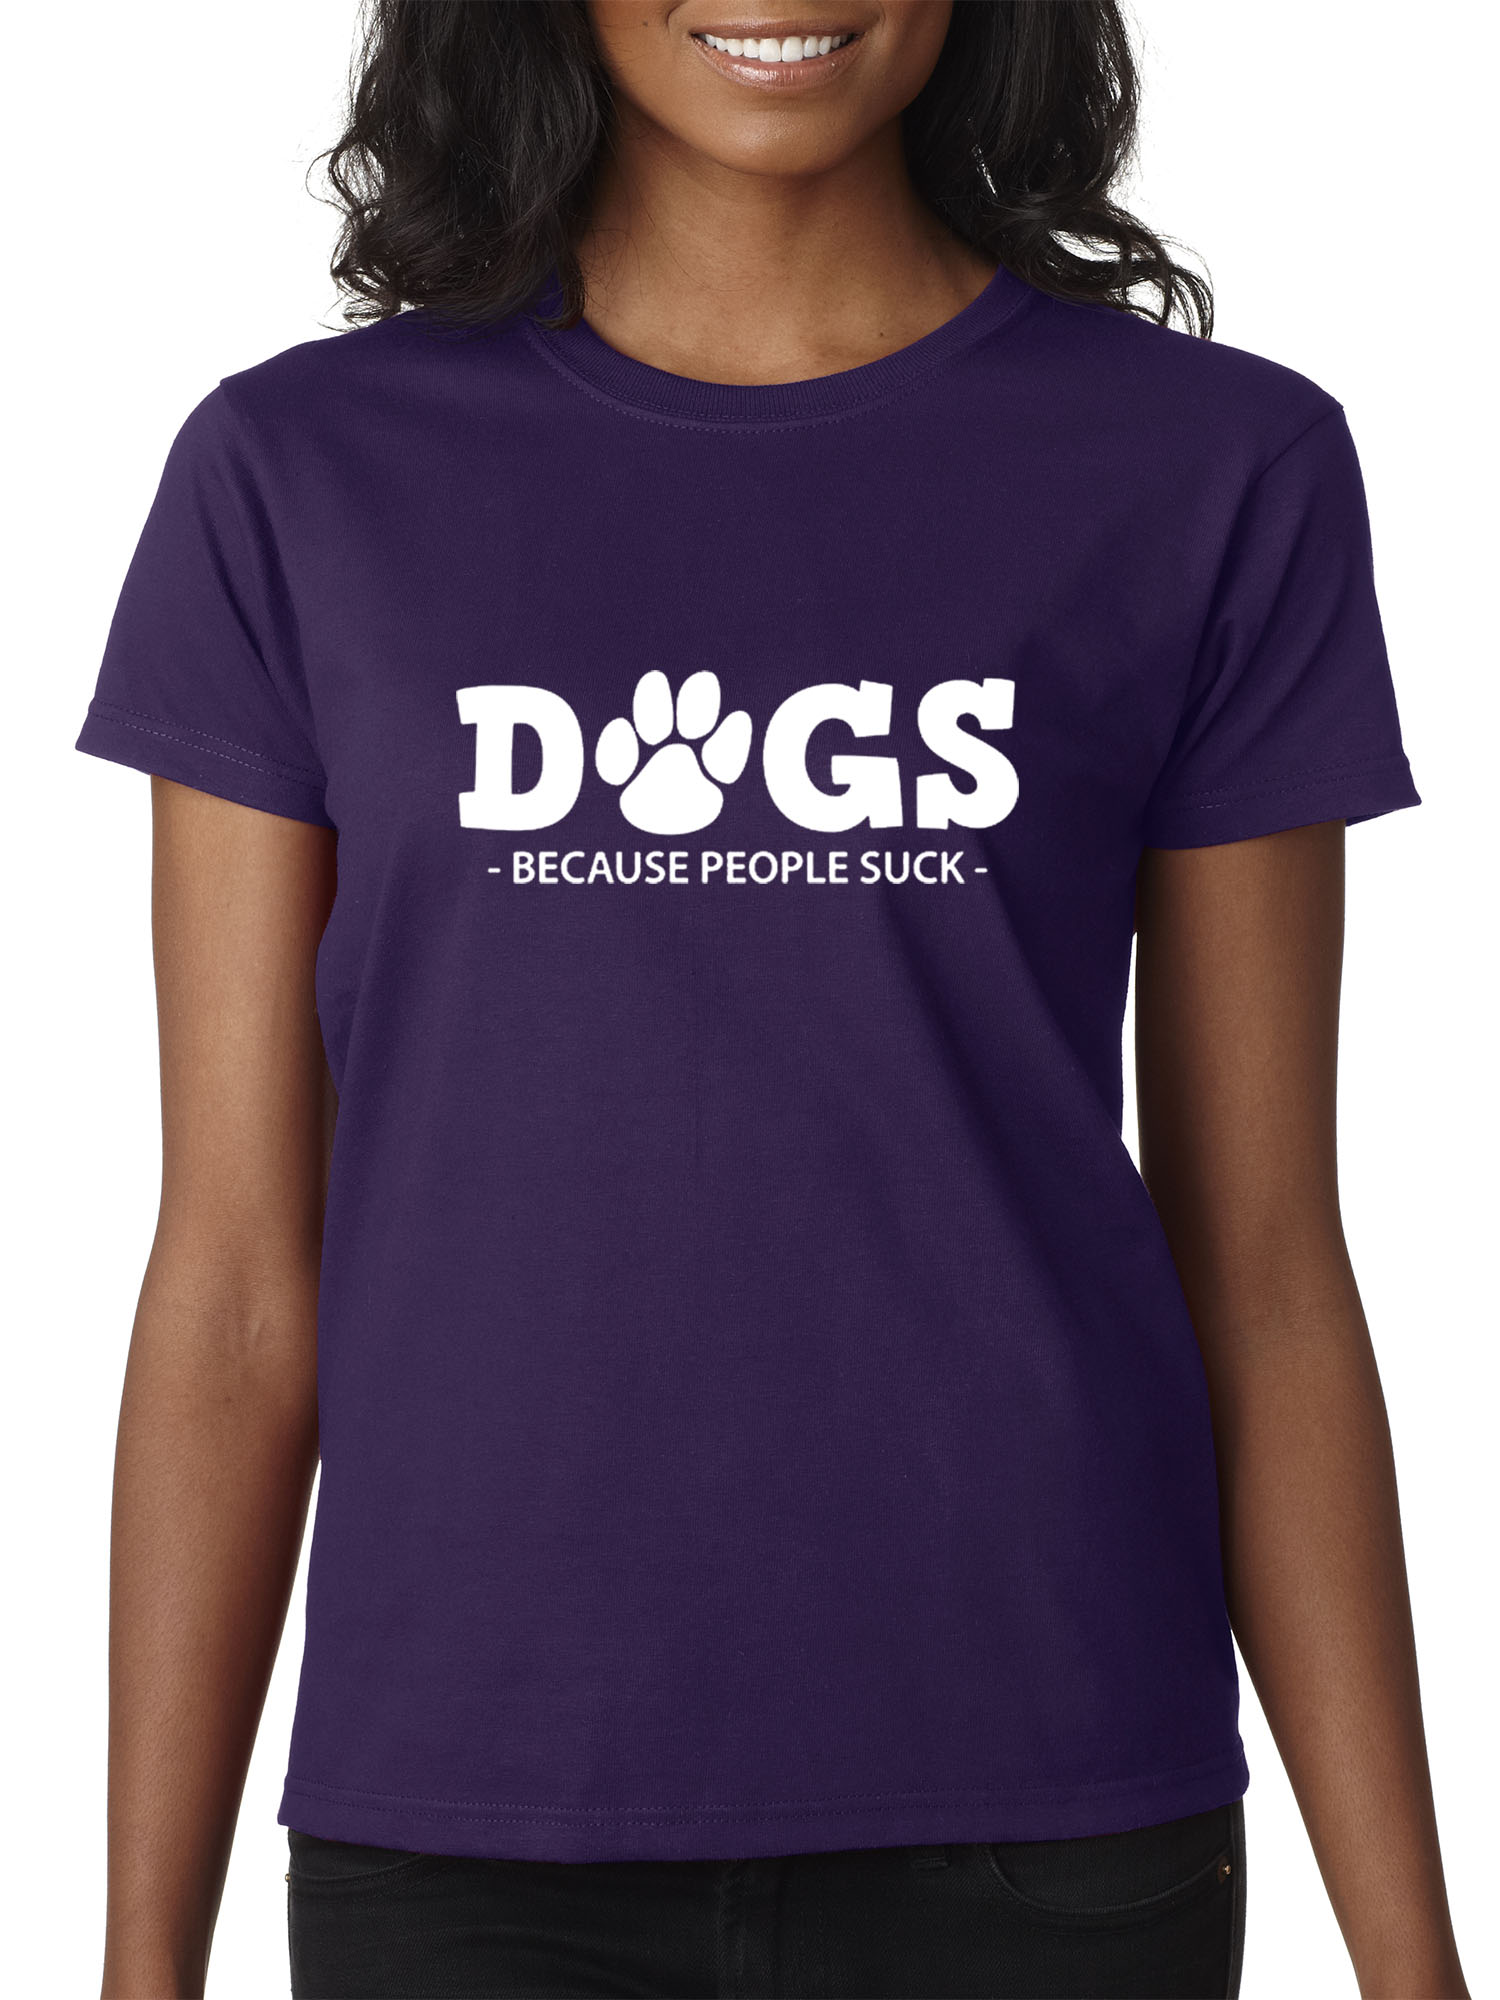 f28cf4bc New Way 993 - Women's T-Shirt Dogs Because People Suck XS Purple